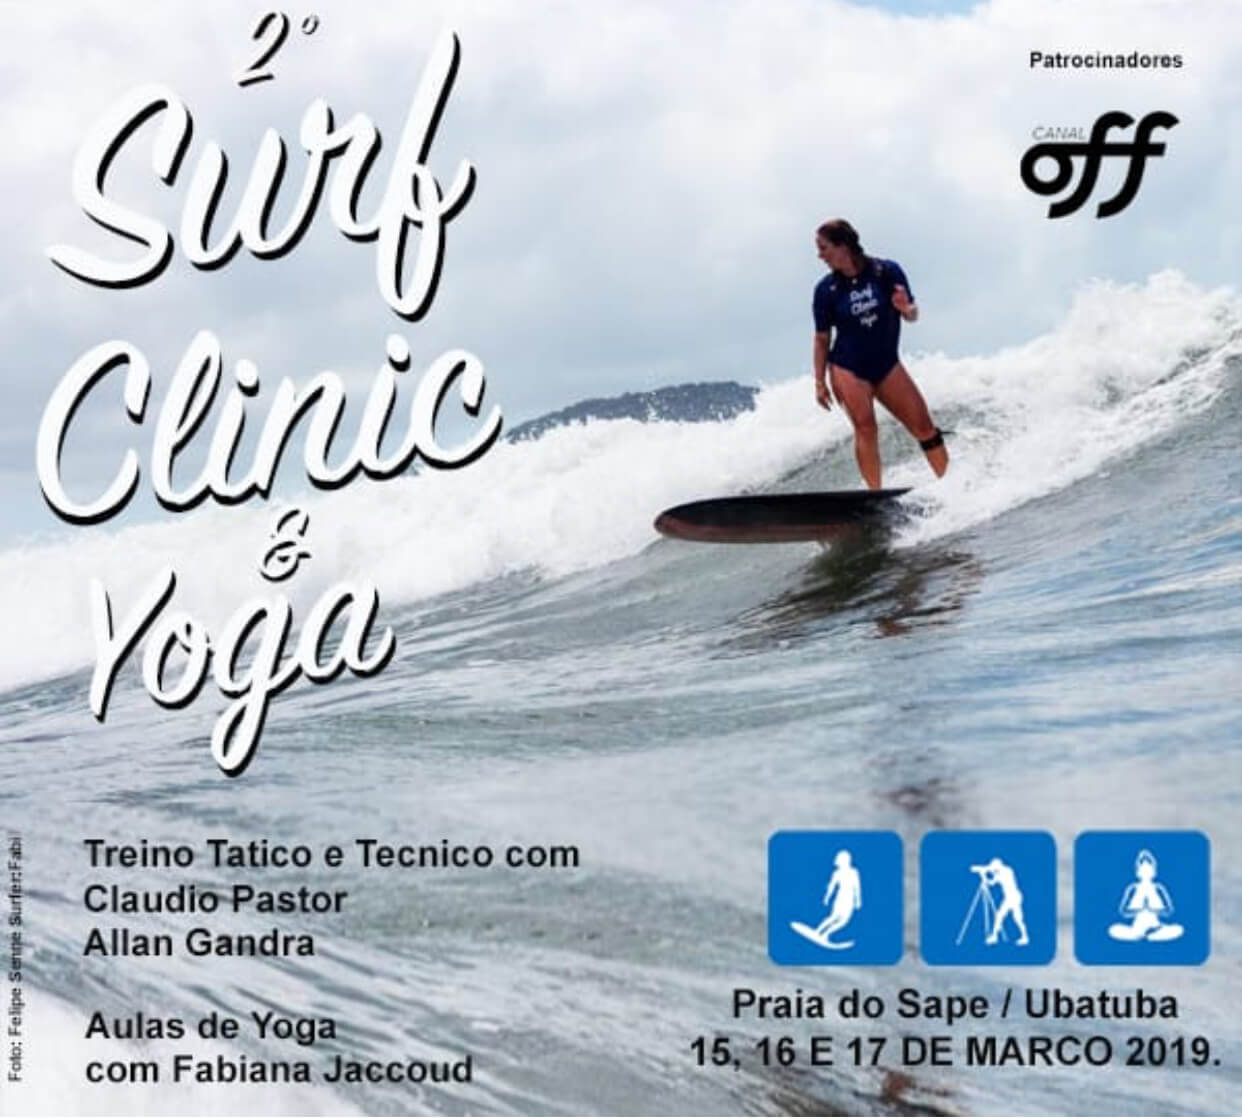 2 Surf Clinic e Yoga